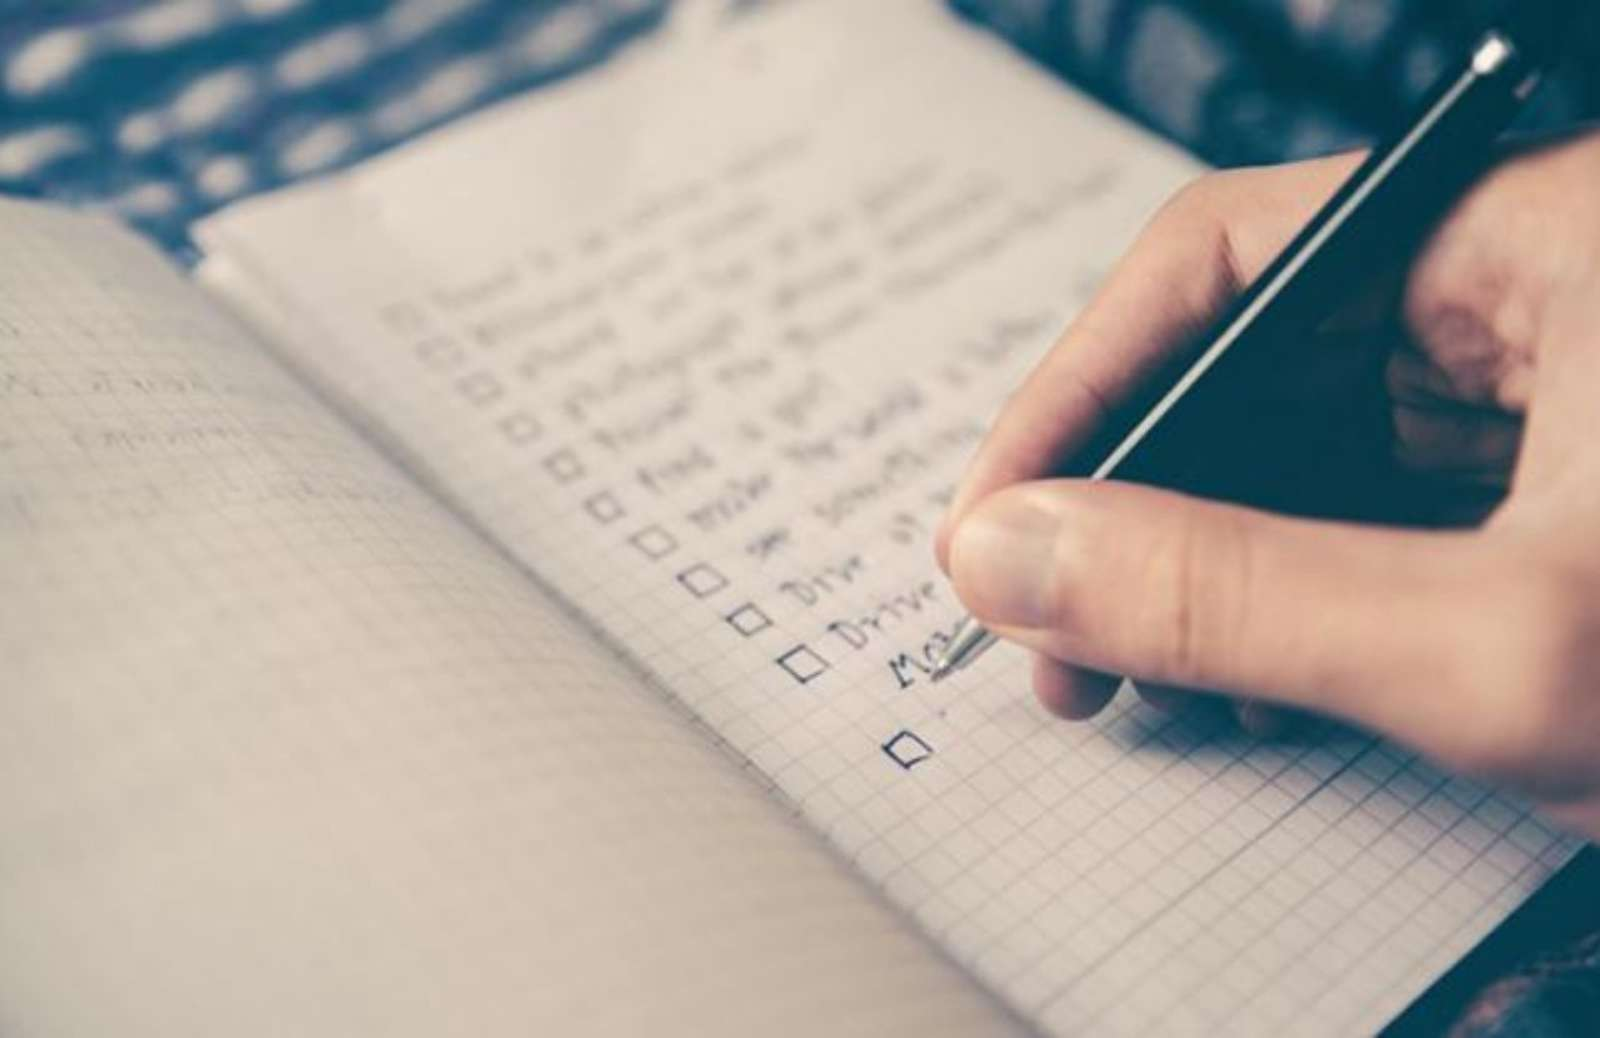 List of things to do with checkboxes